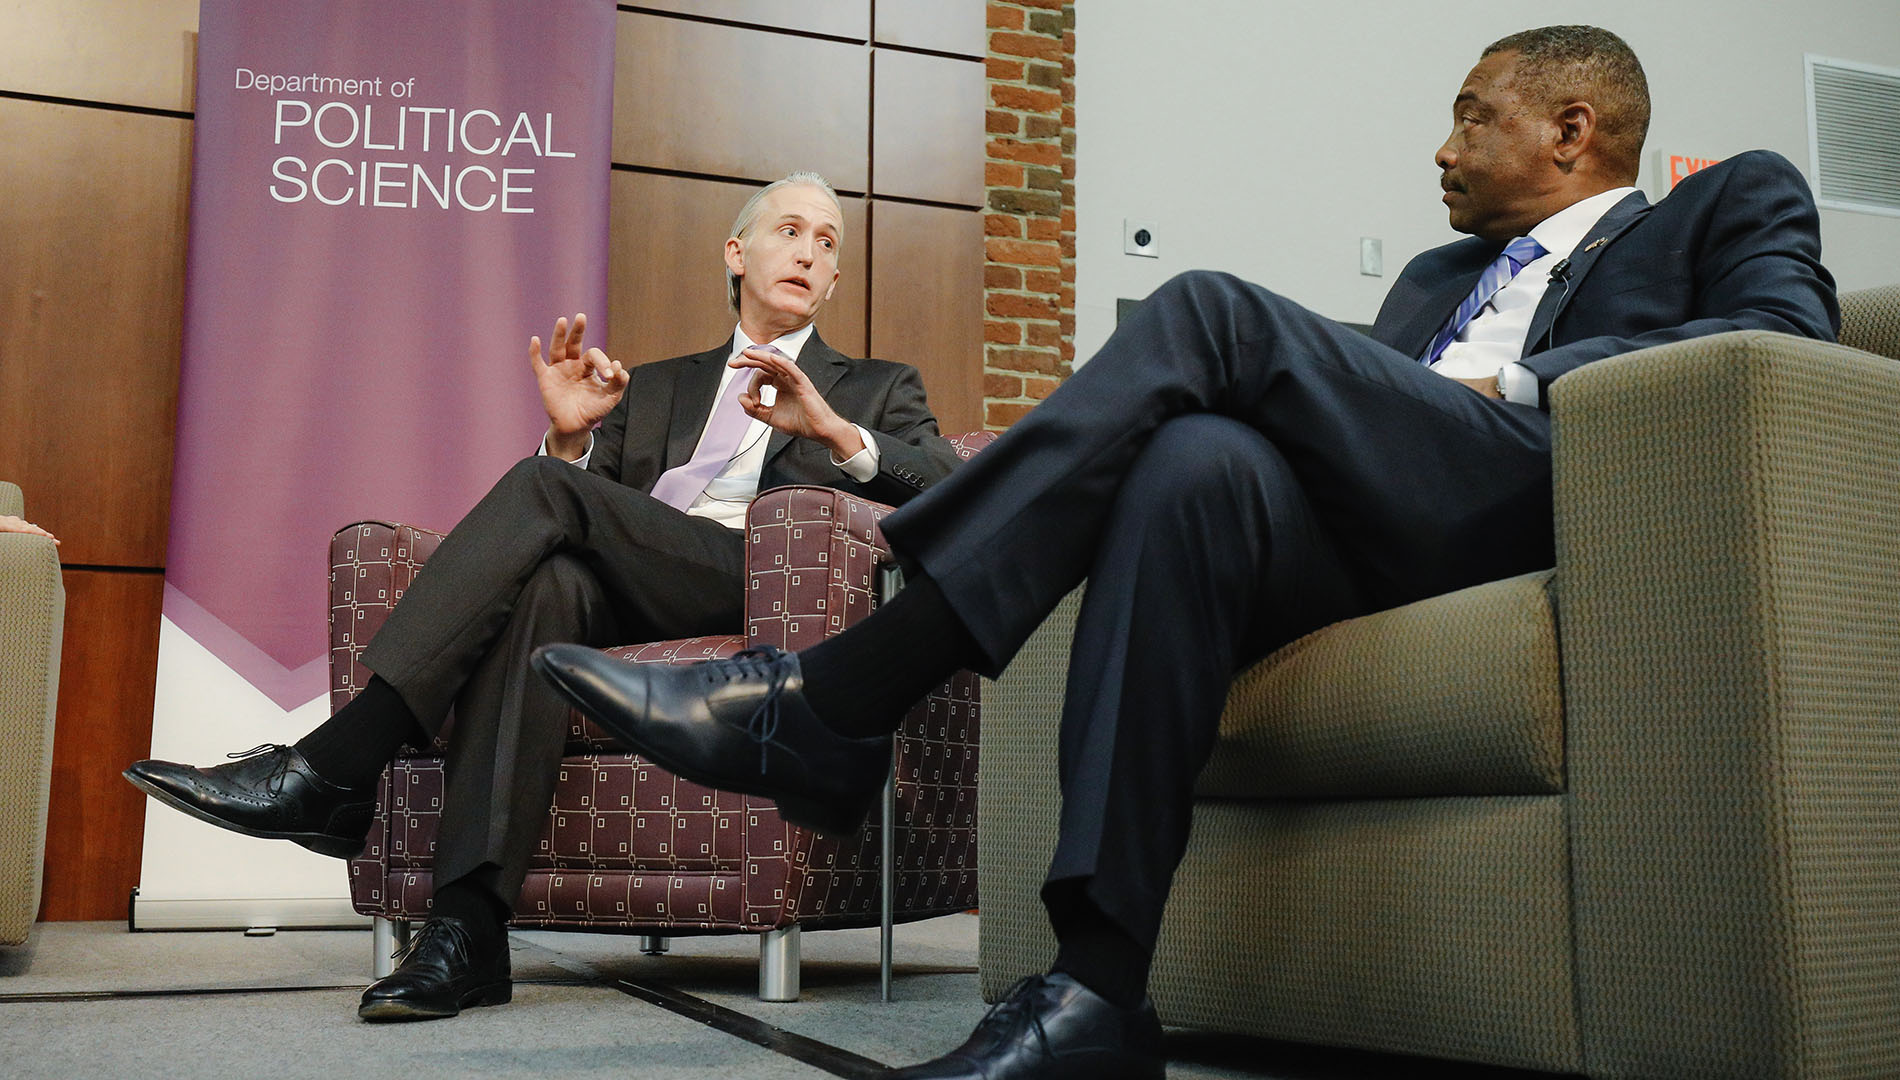 Rep. Trey Gowdy and Democratic candidate Thomas Dixon